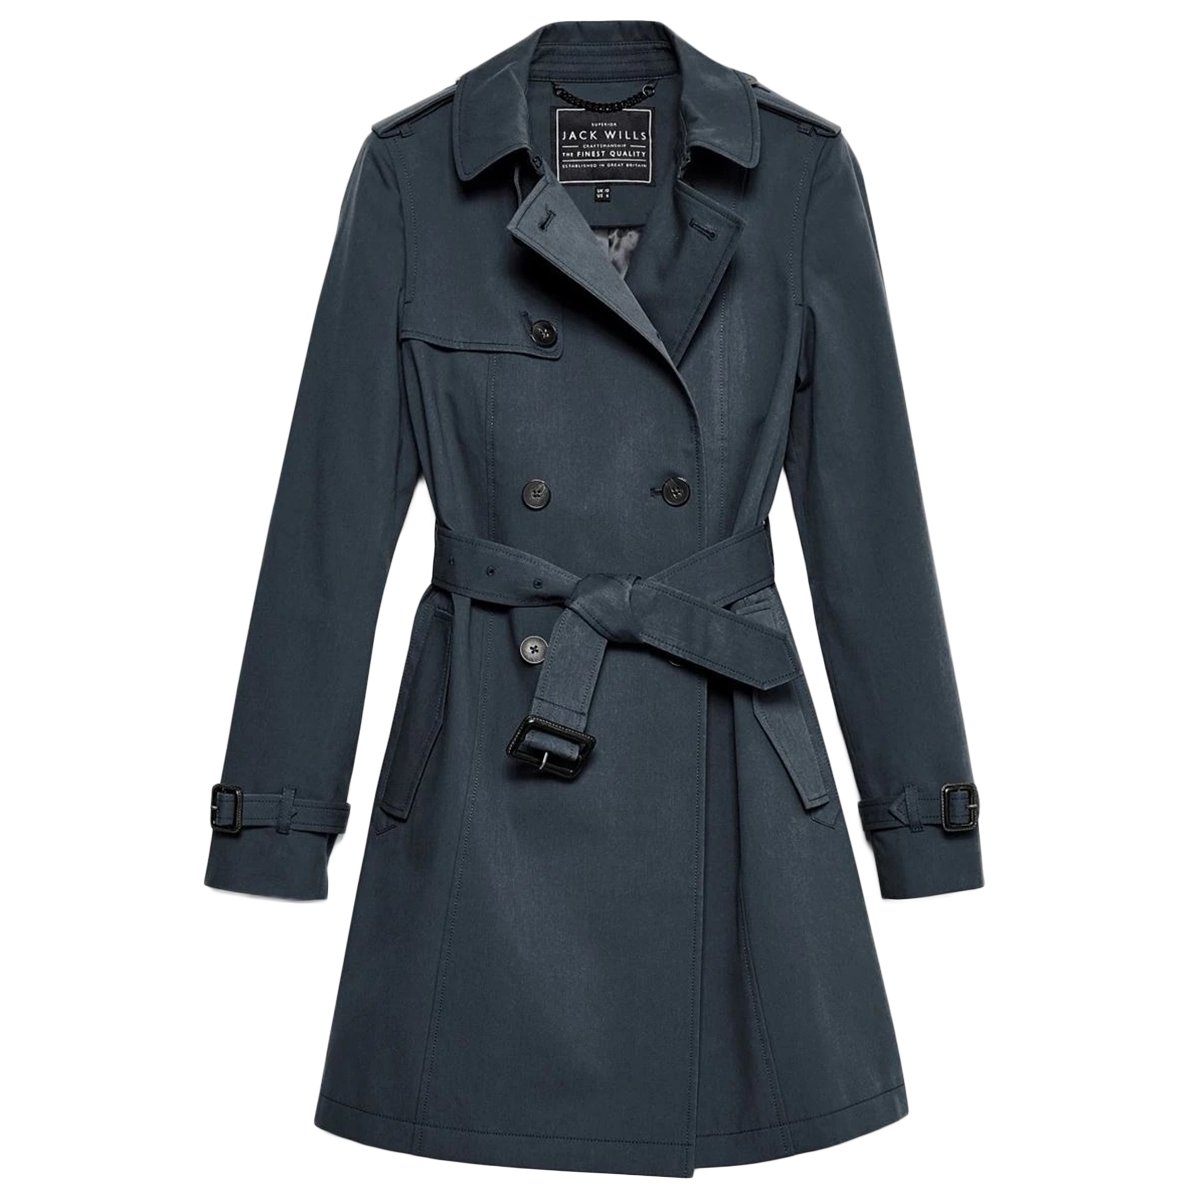 Jack Wills Women's Ambrose Trench Coat - Black, 0